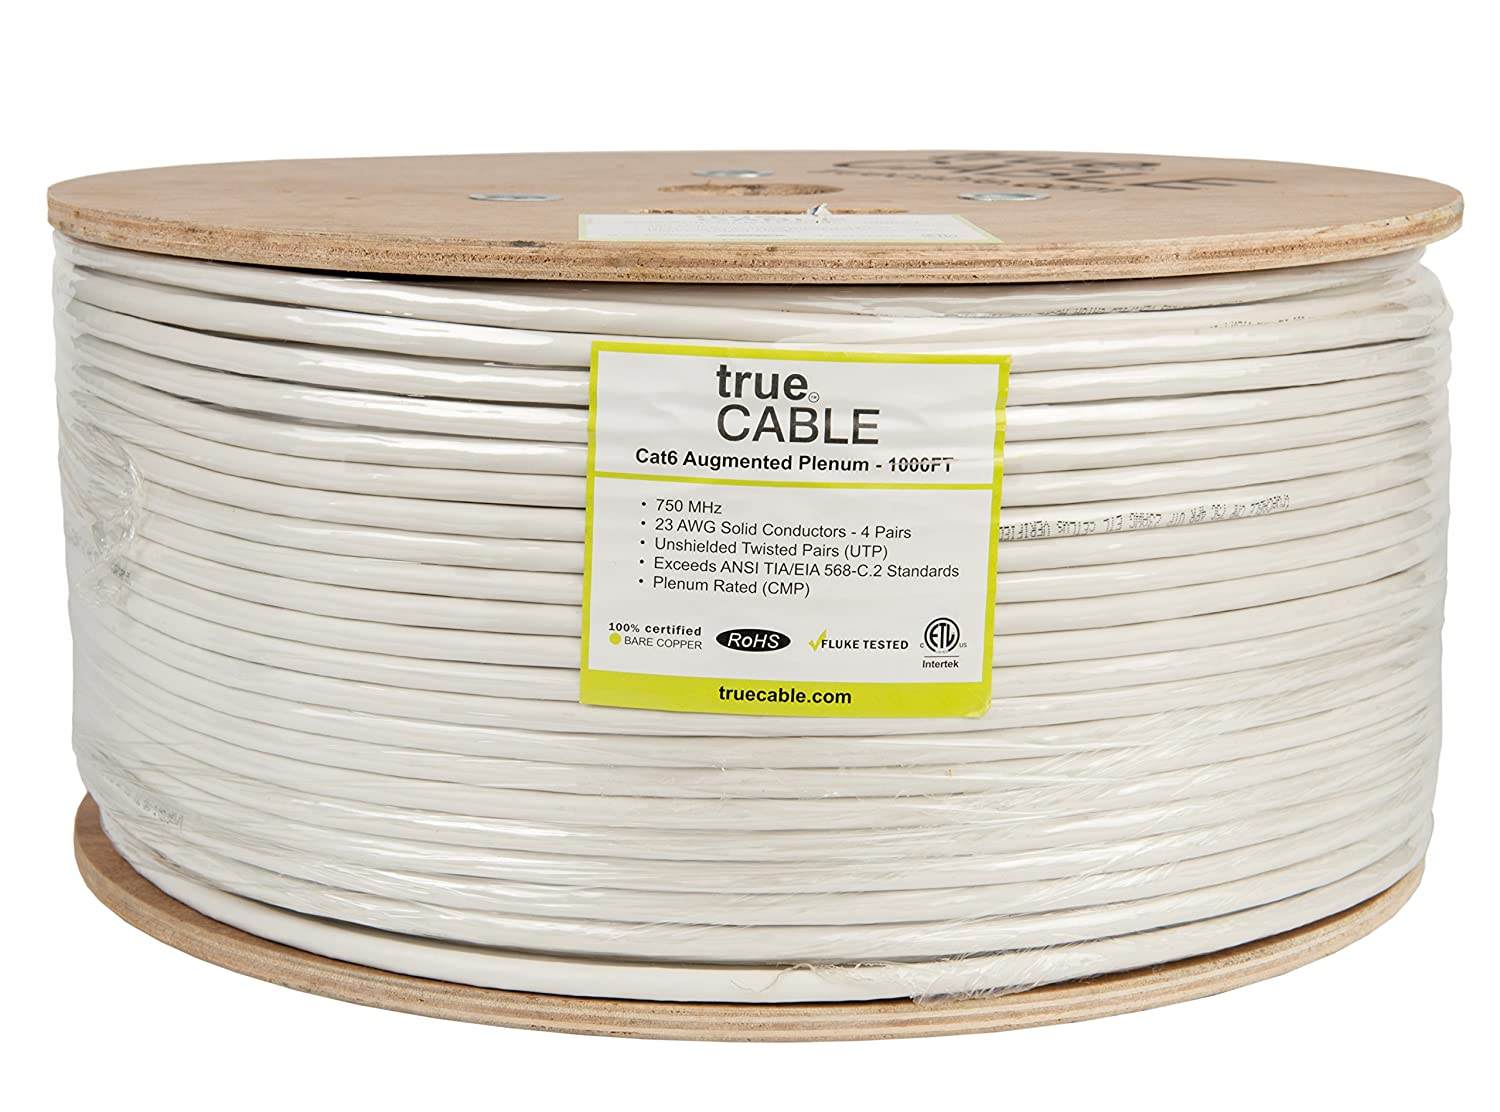 Cat6a Plenum Cmp 1000ft White 23awg 4 Pair Solid Unshielded Twisted Wiring Bare Copper 750mhz Etl Listed Utp Bulk Ethernet Cable